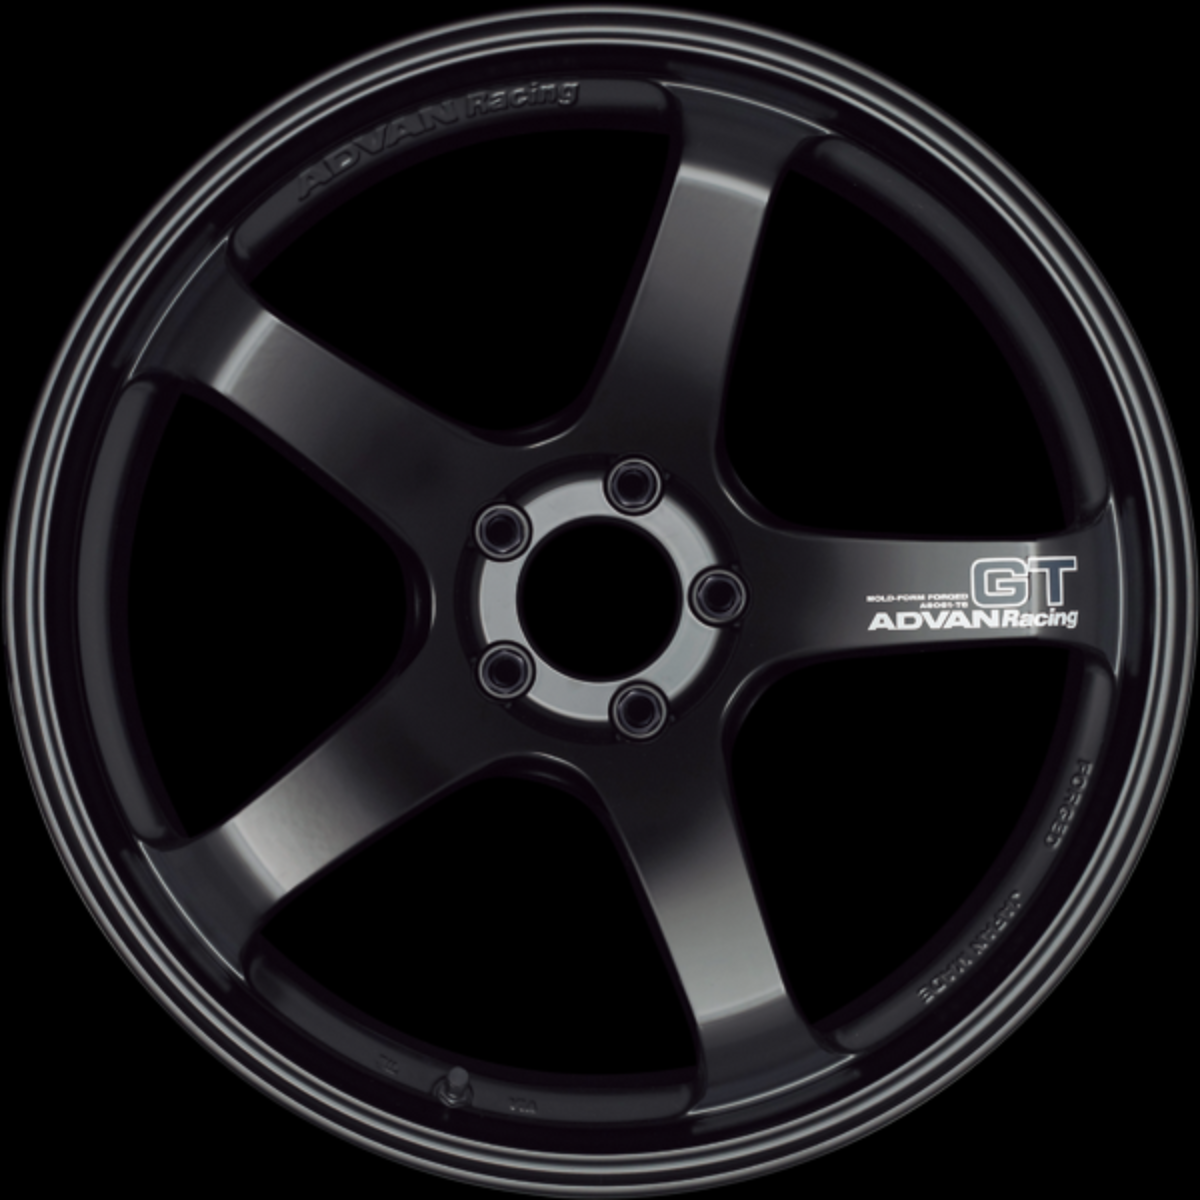 [Set of 4] YOKOHAMA ADVAN Racing GT 19x9.5J +45 5x100 SEMI GLOSS BLACK